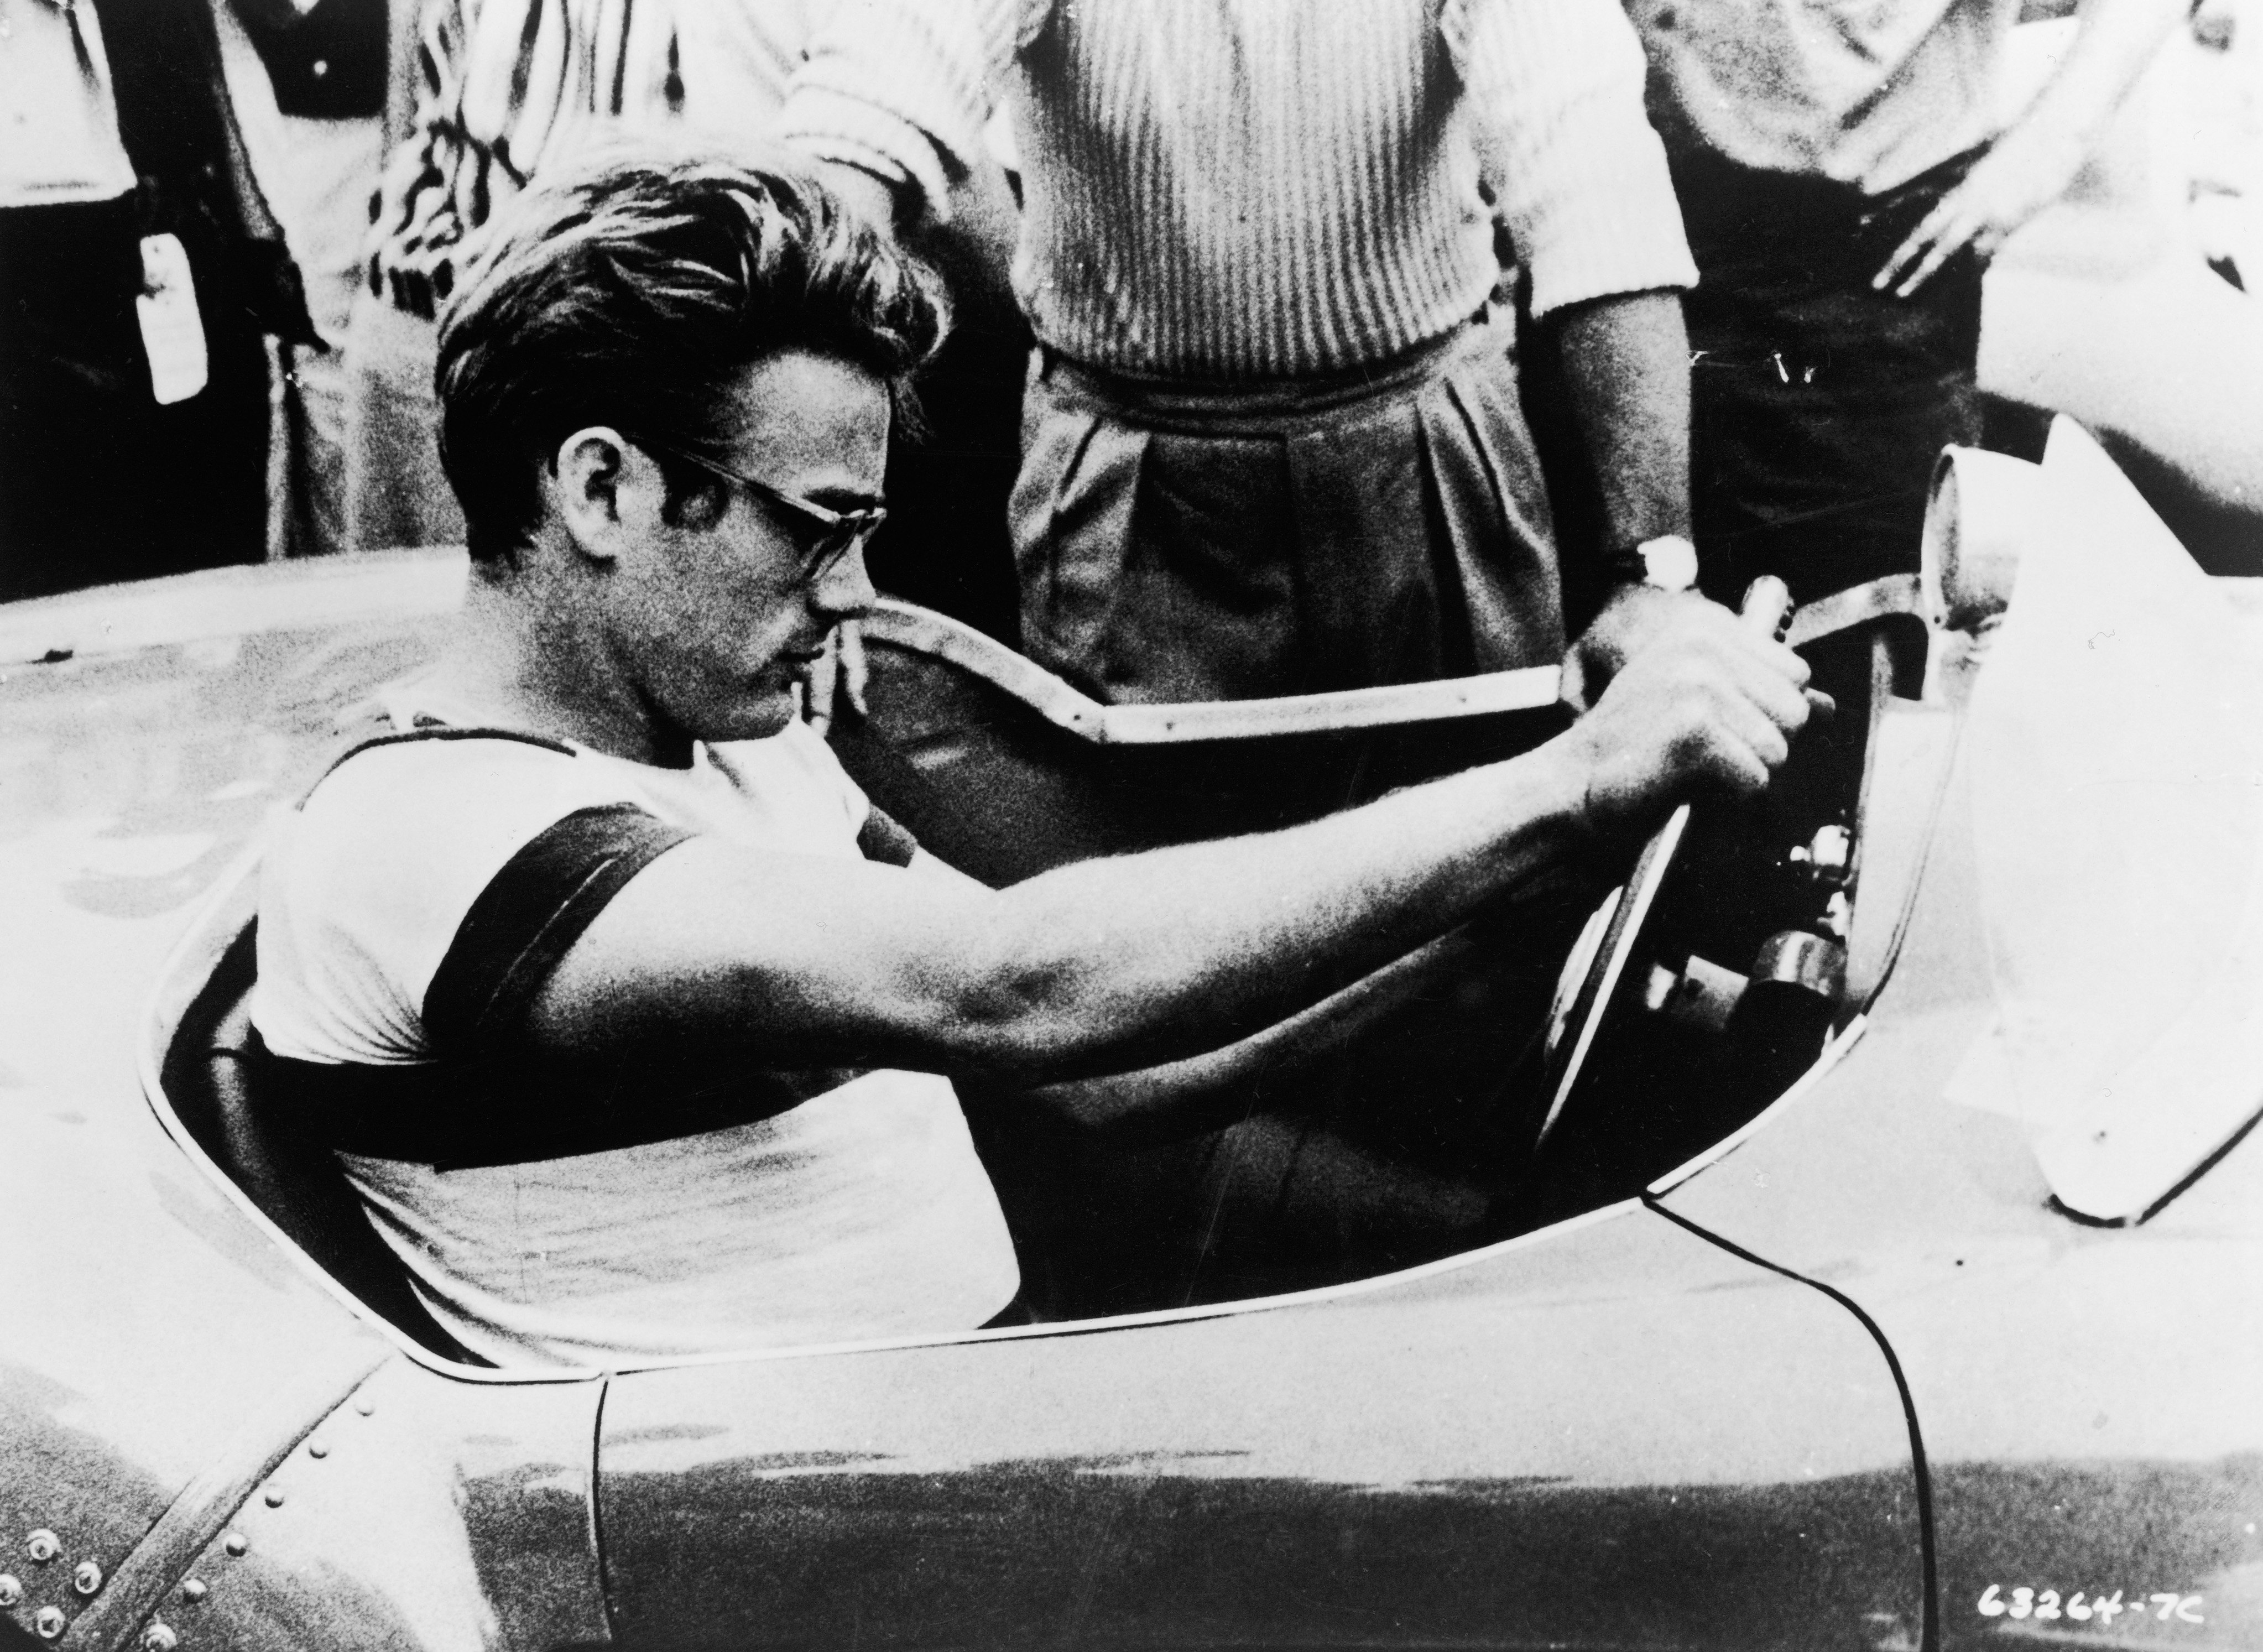 james dean sits behind the wheel of a sports car in a still from the